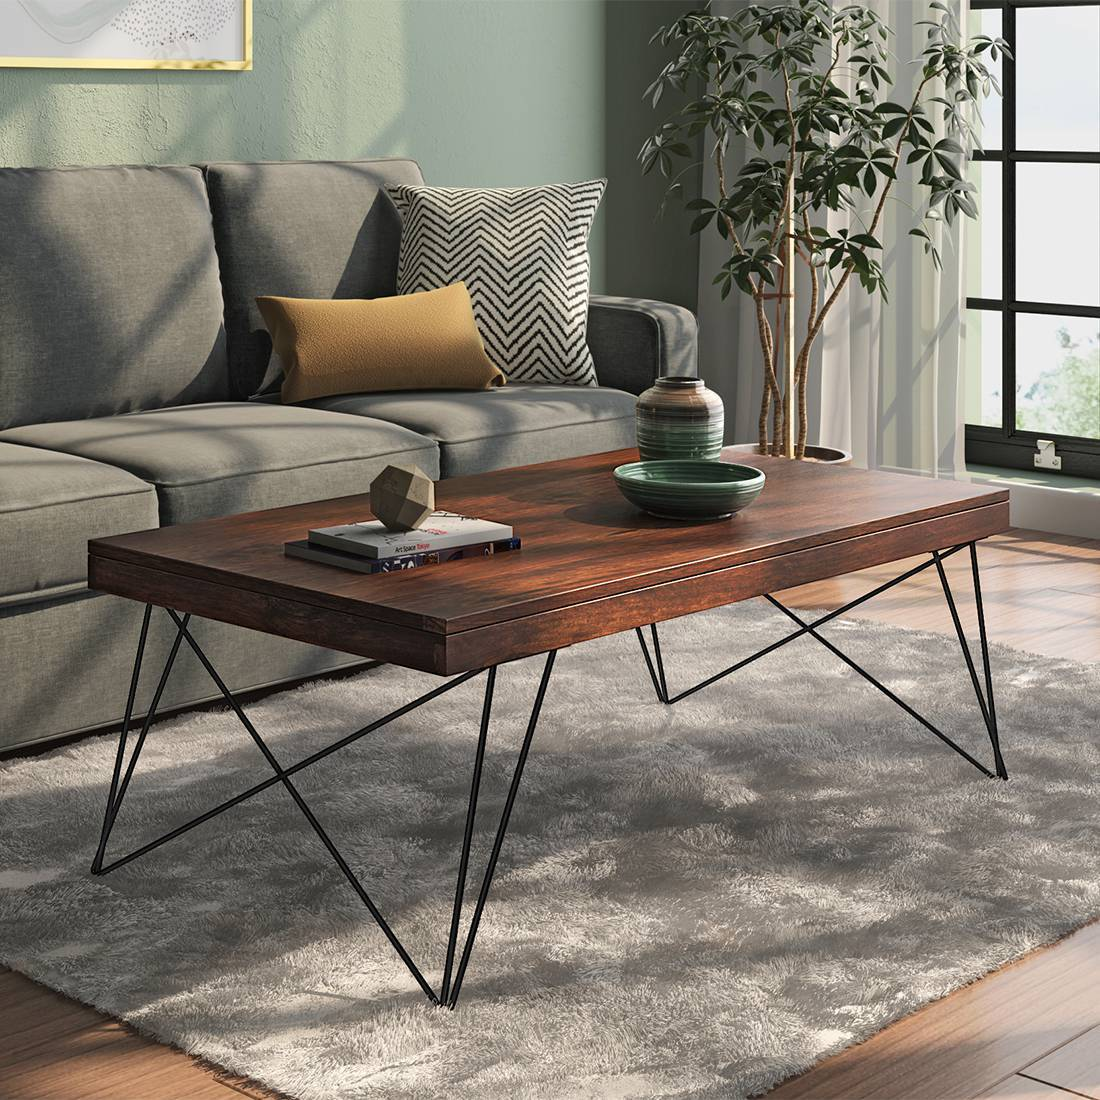 Coffee Table Buy Coffee Tables Online Latest Coffee Table Designs Urban Ladder